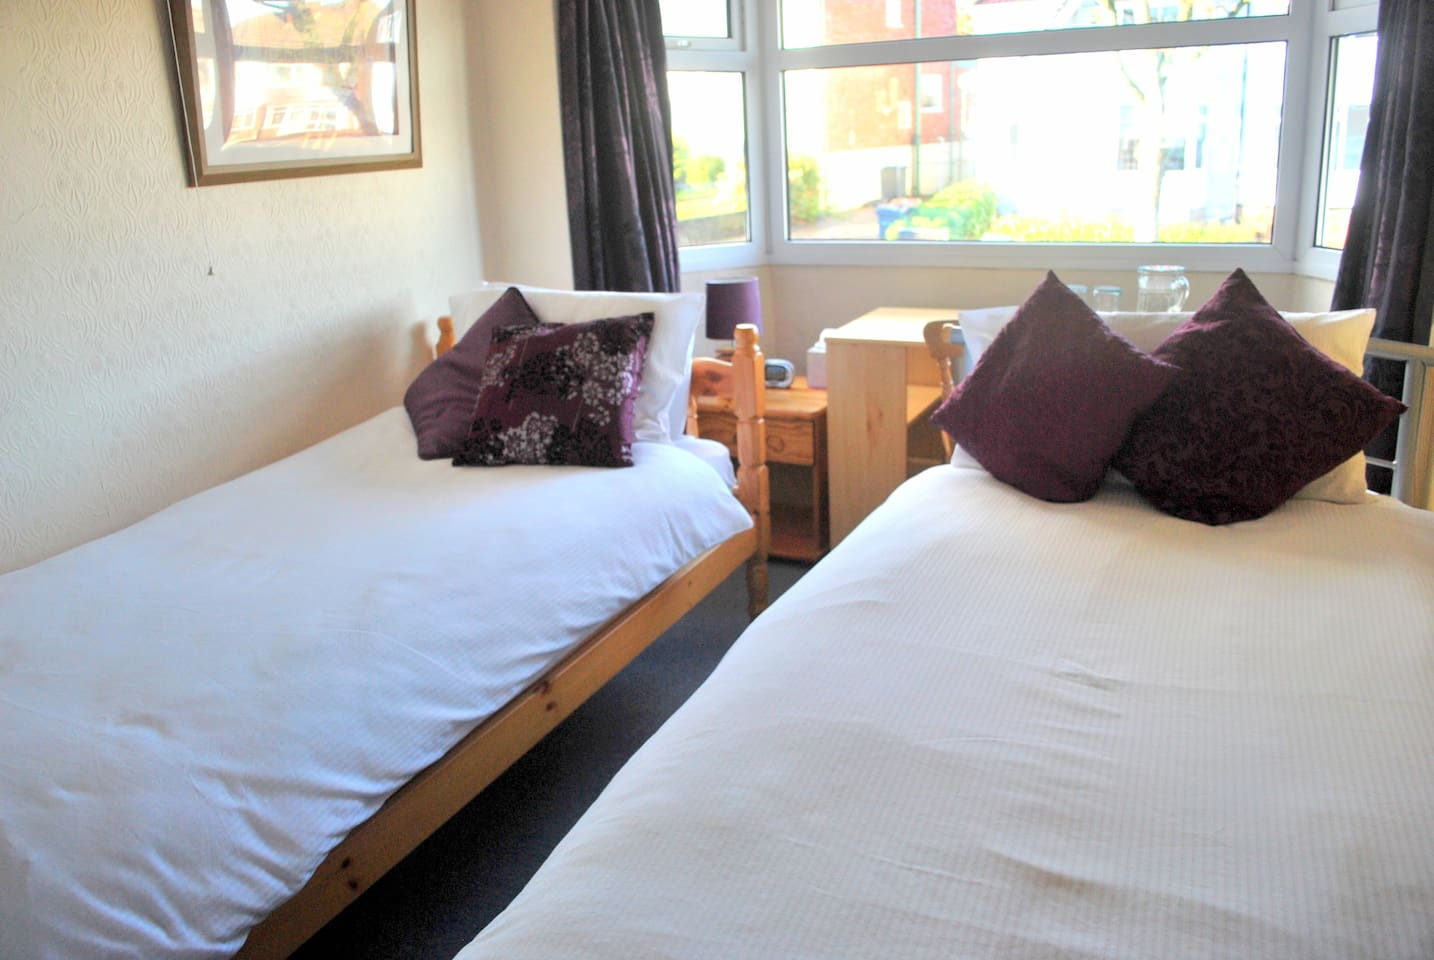 The room with twin beds and plump, cosy duvets